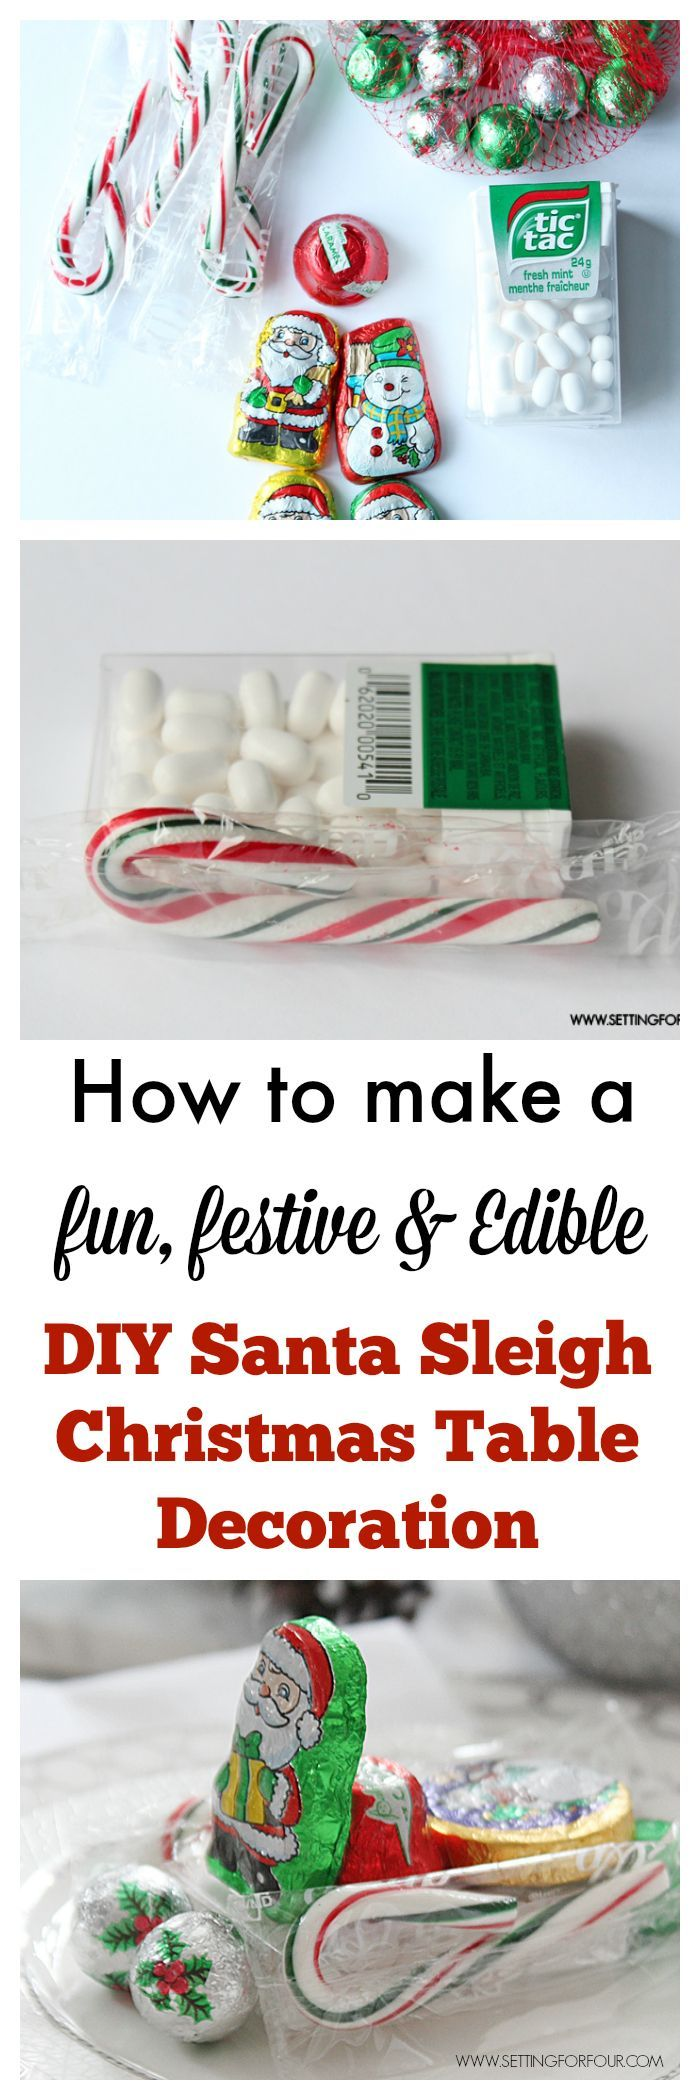 Pics Of Christmas Things 304 best christmas decorating ideas - diy images on pinterest